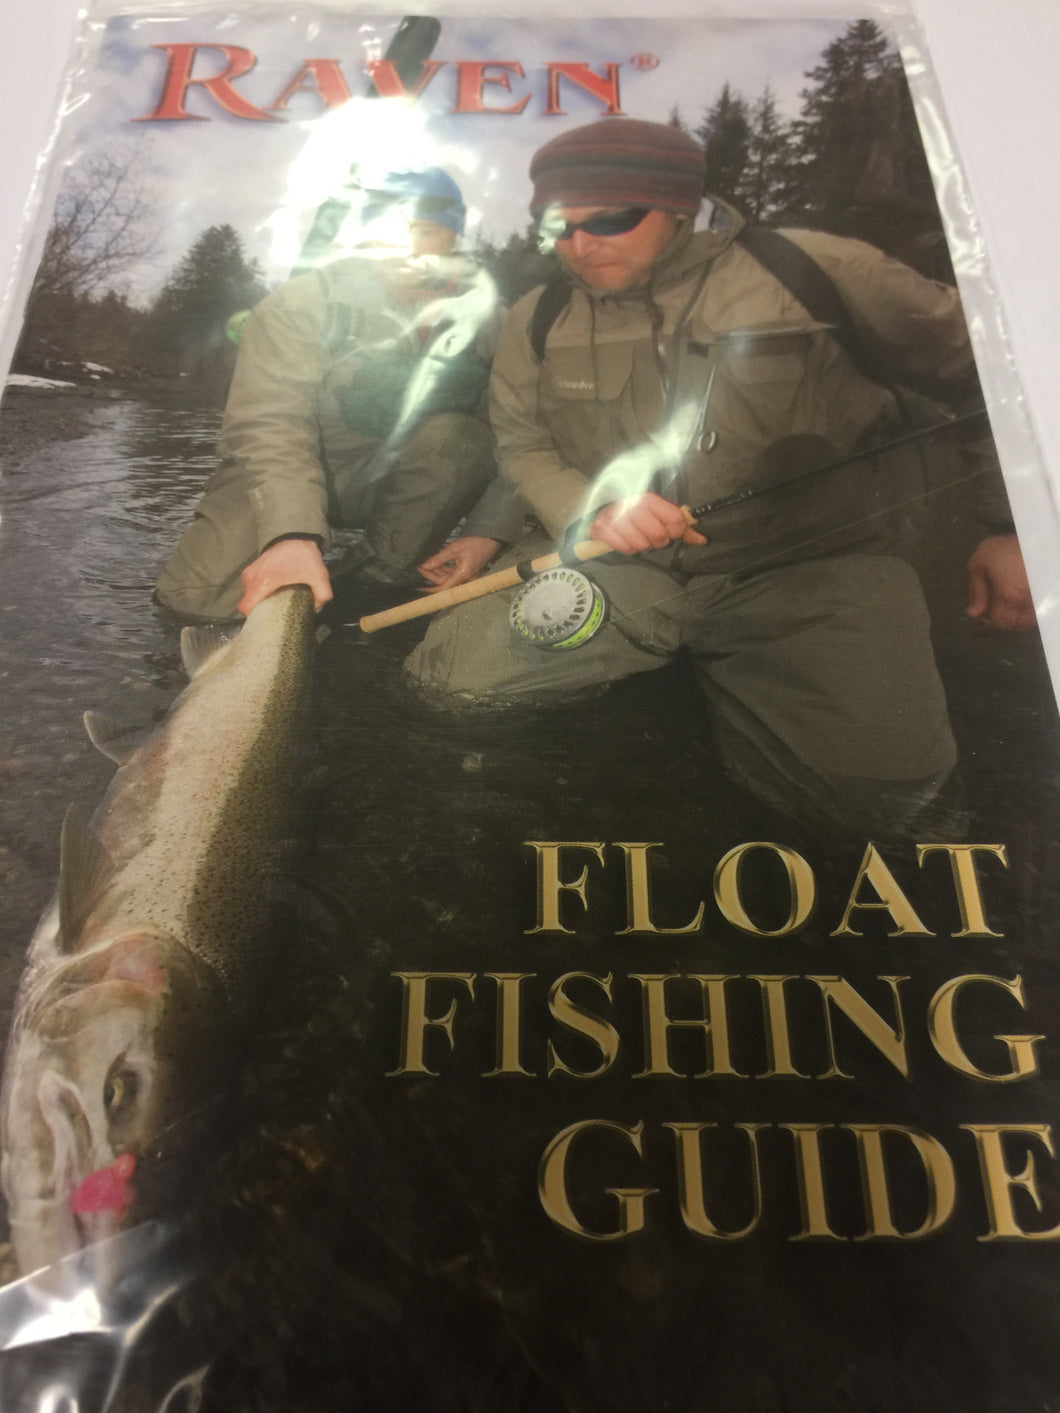 Raven float fishing guide